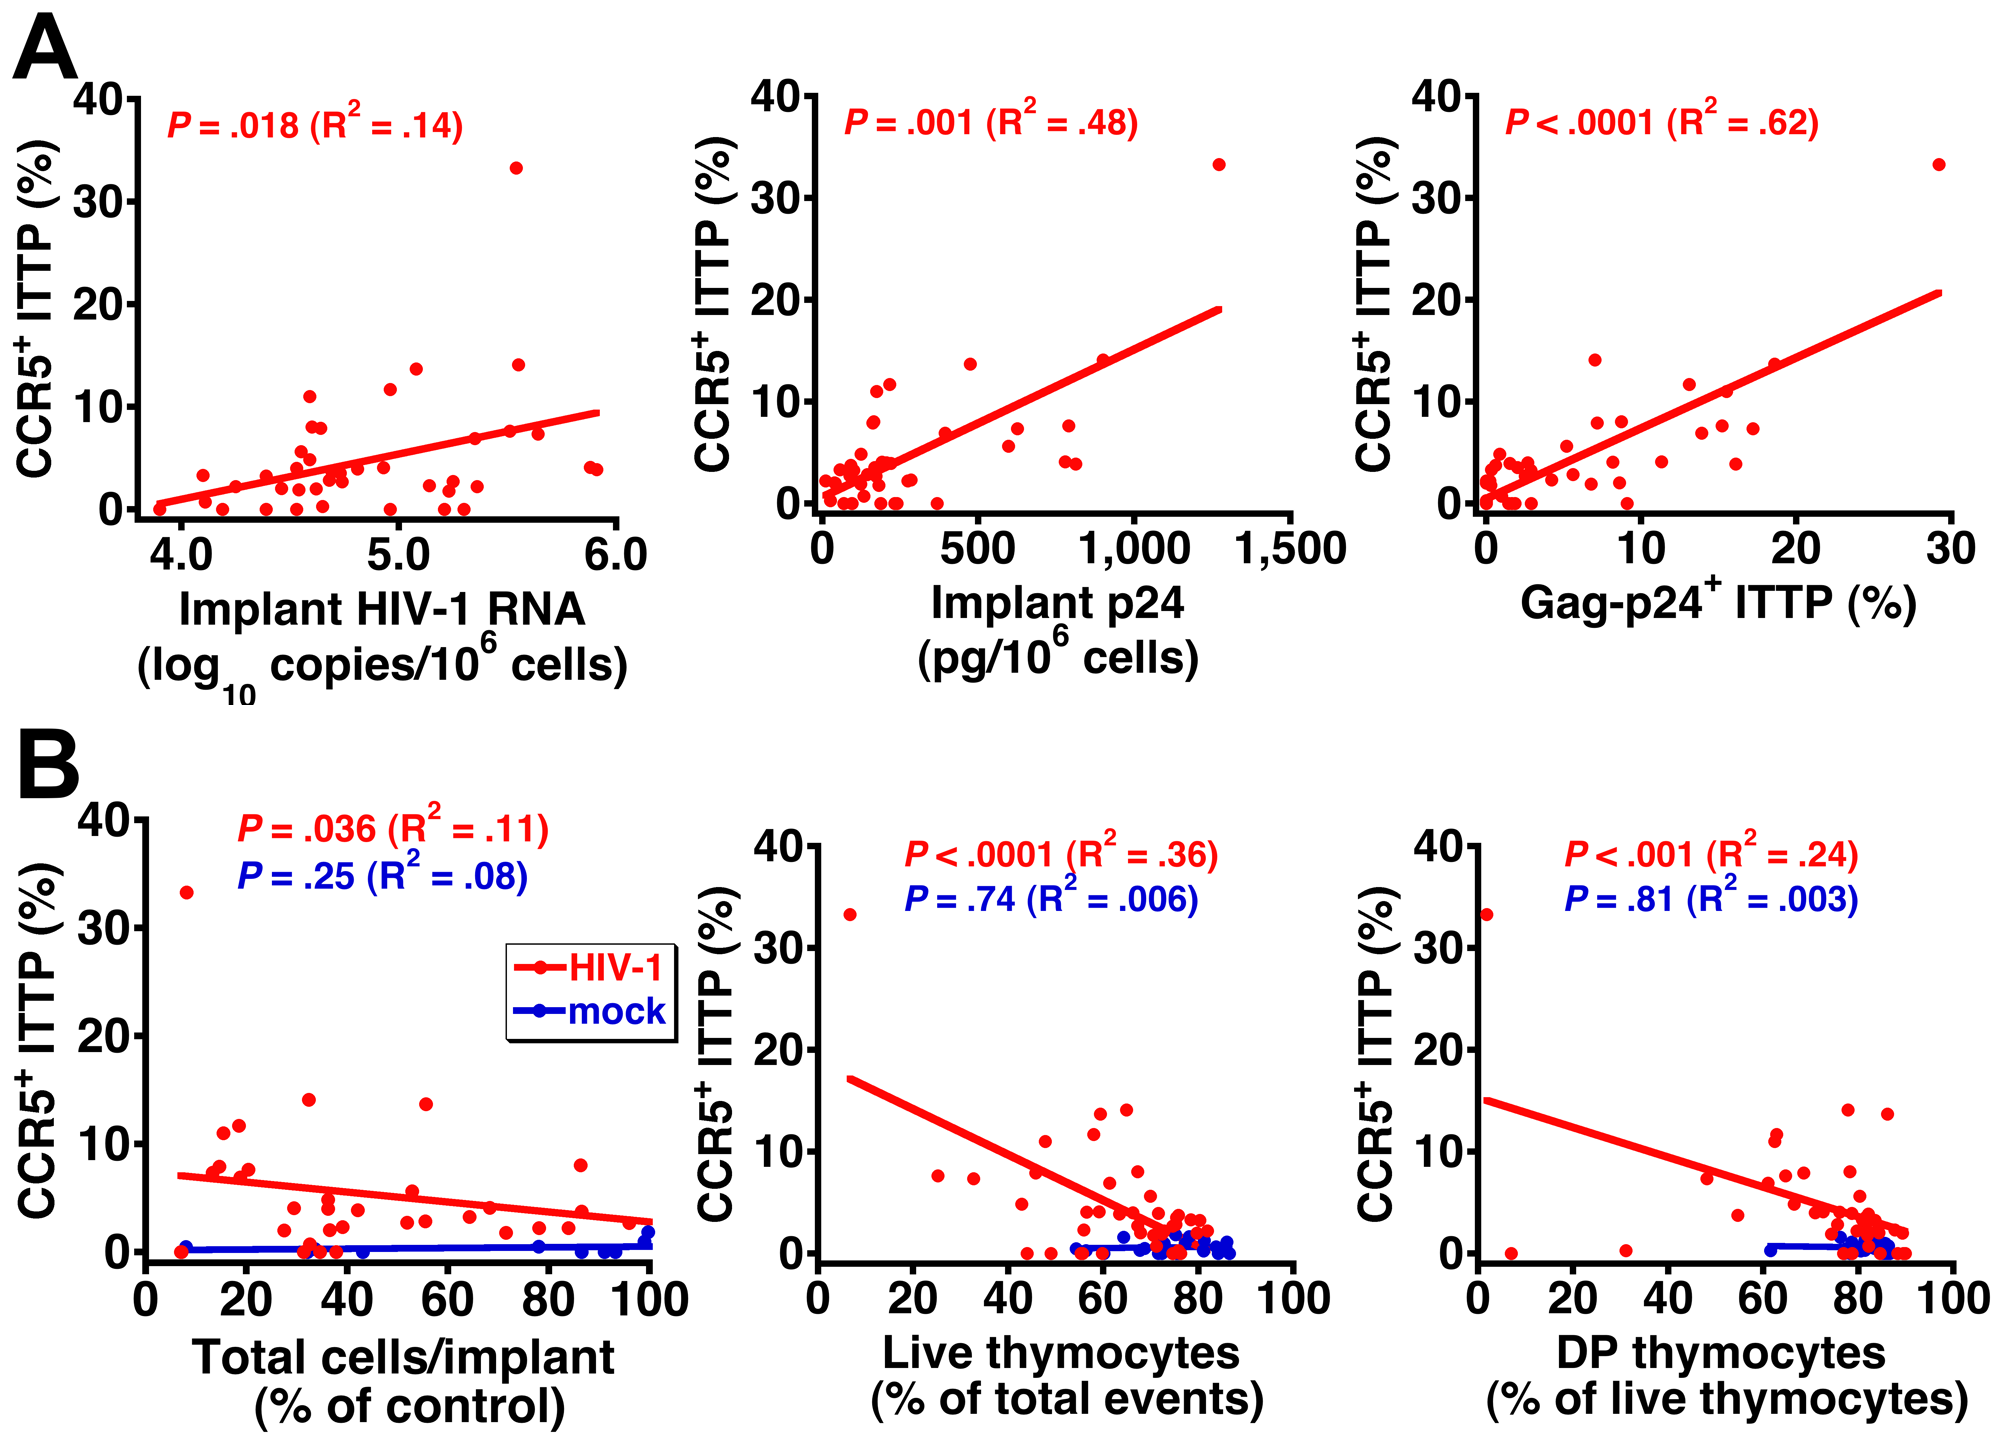 Correlation between CCR5 induction on ITTP, HIV replication, and thymocyte depletion.